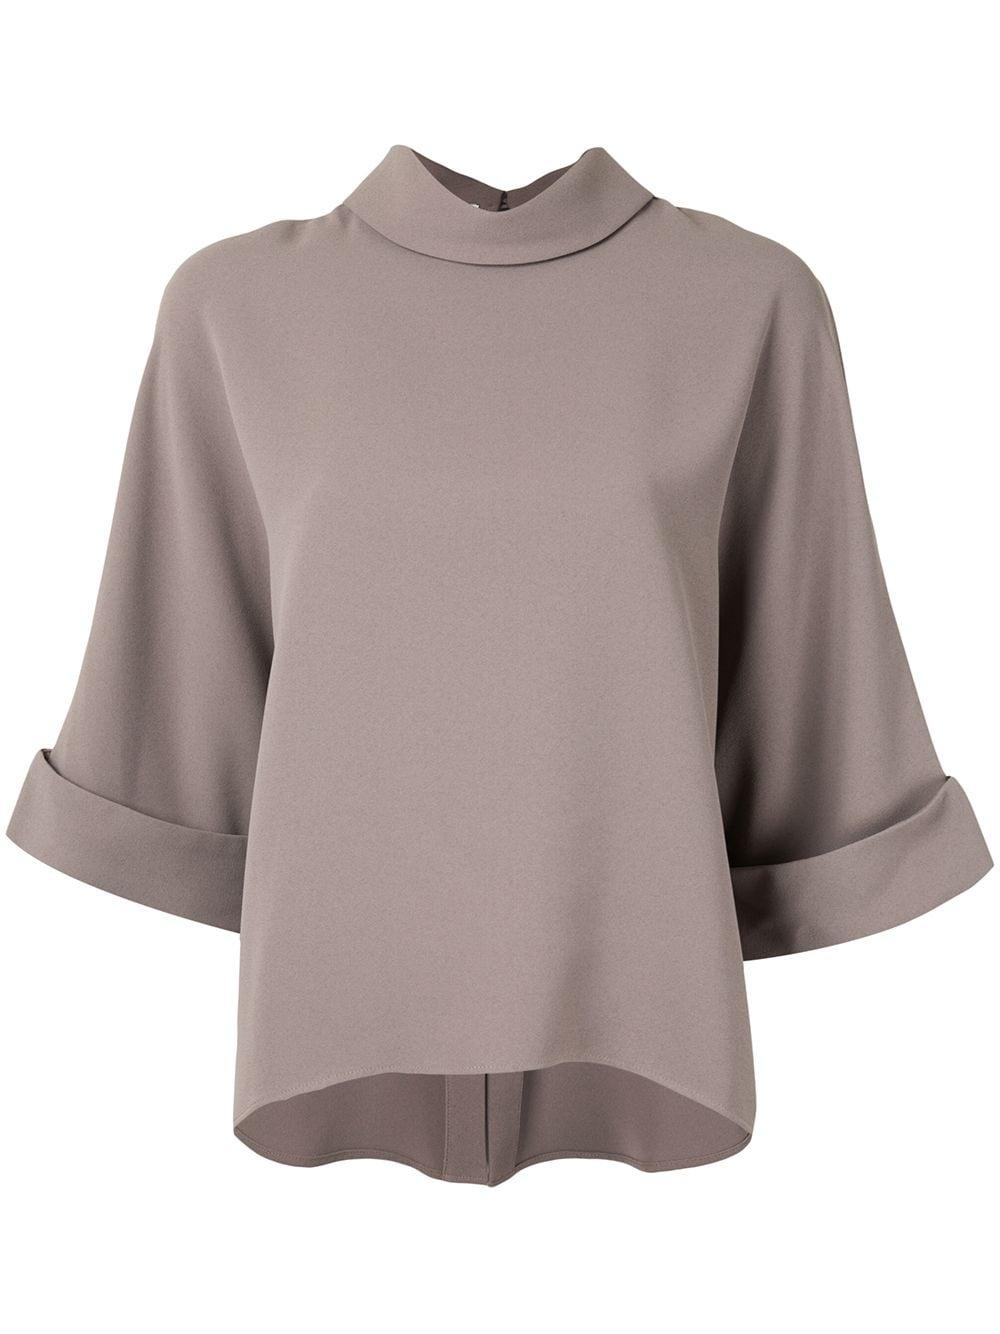 Bailee Mock Neck Blouse Item # 1001 01 150 0268